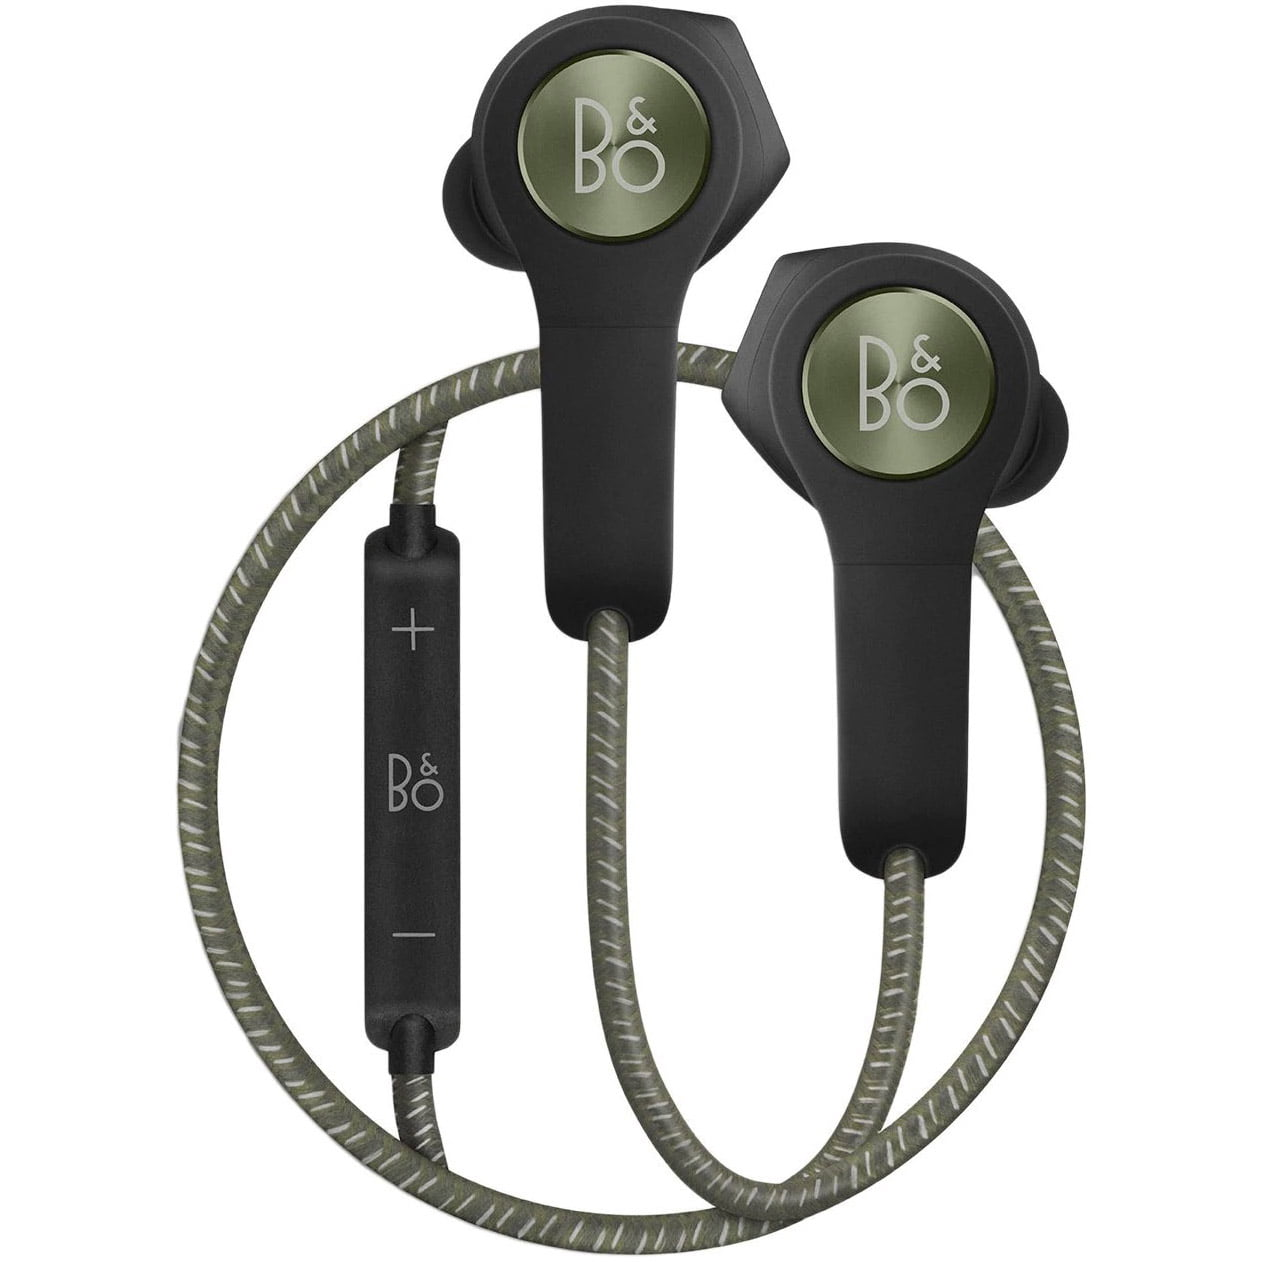 Casti In-Ear Bose Bang & Olufsen Beoplay H5, Bluetooth, Microfon, Noise Cancelling, Moss Green